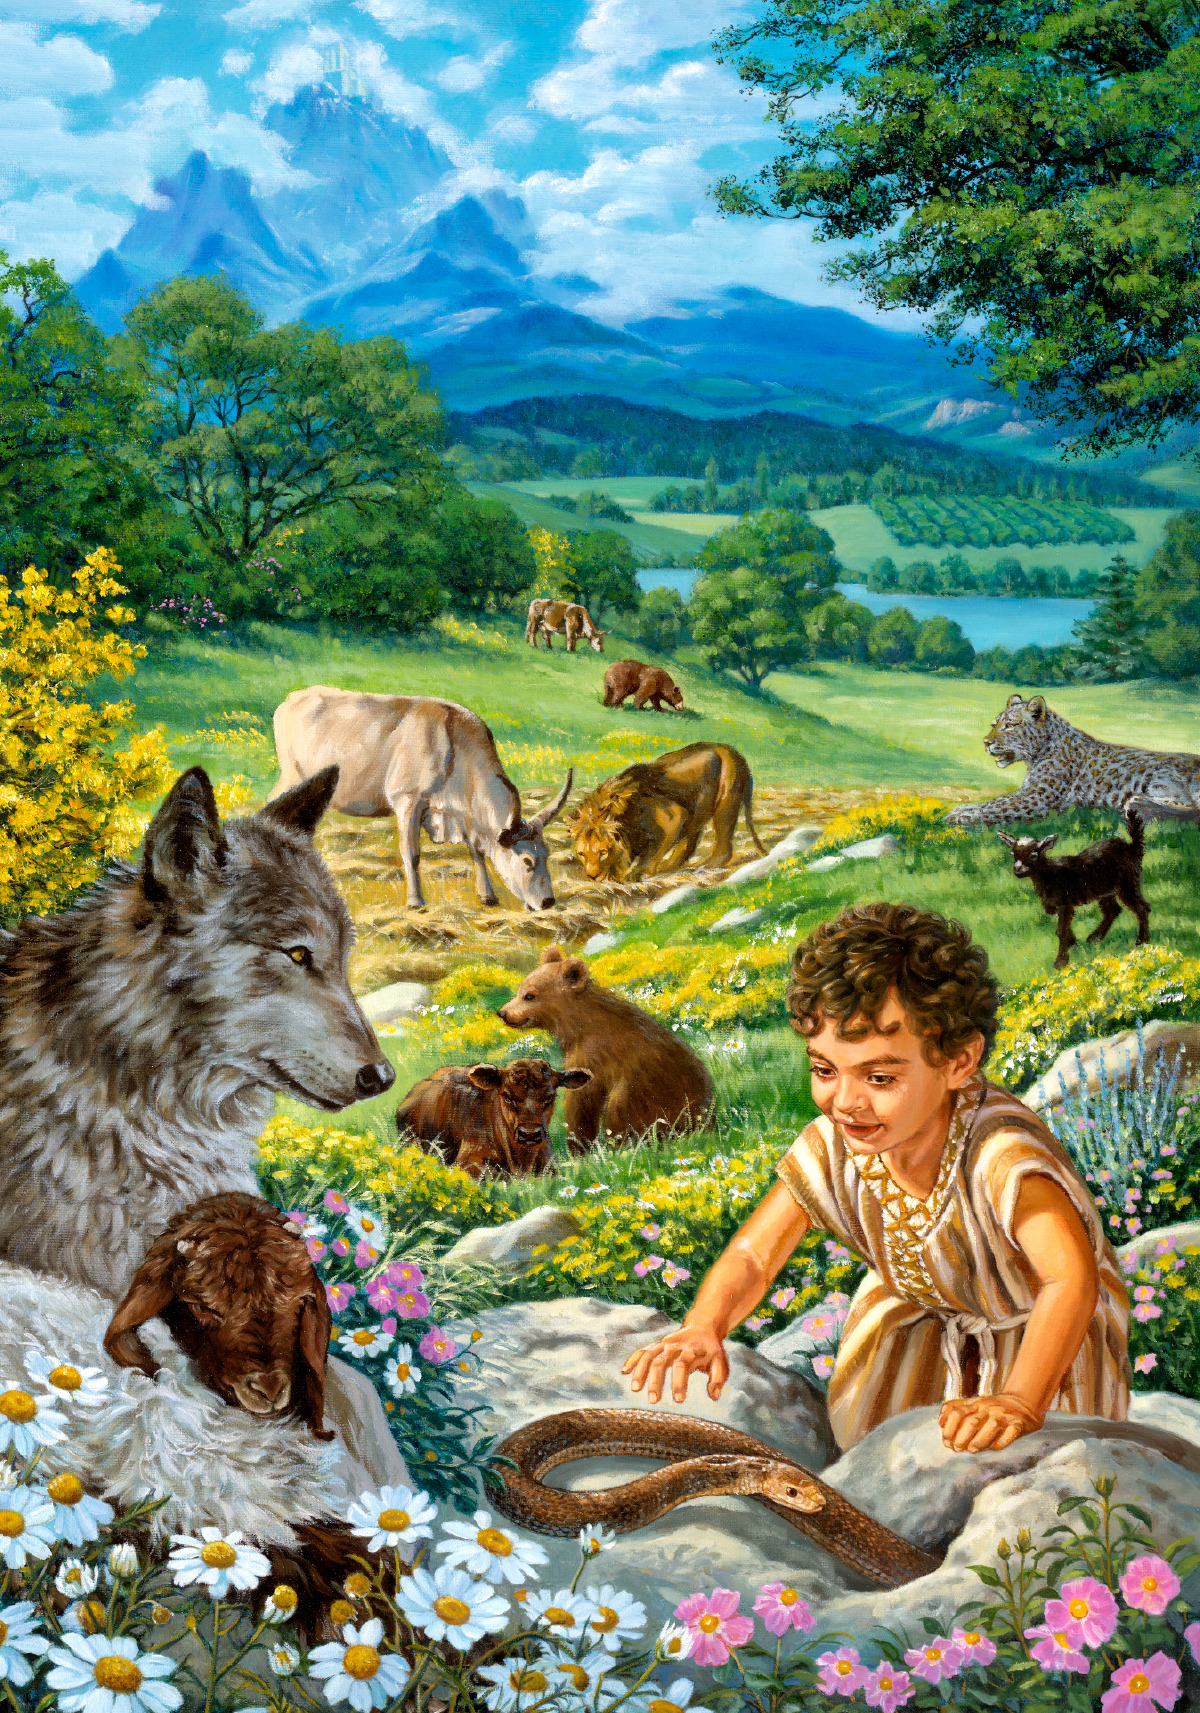 Will there be animals in paradise